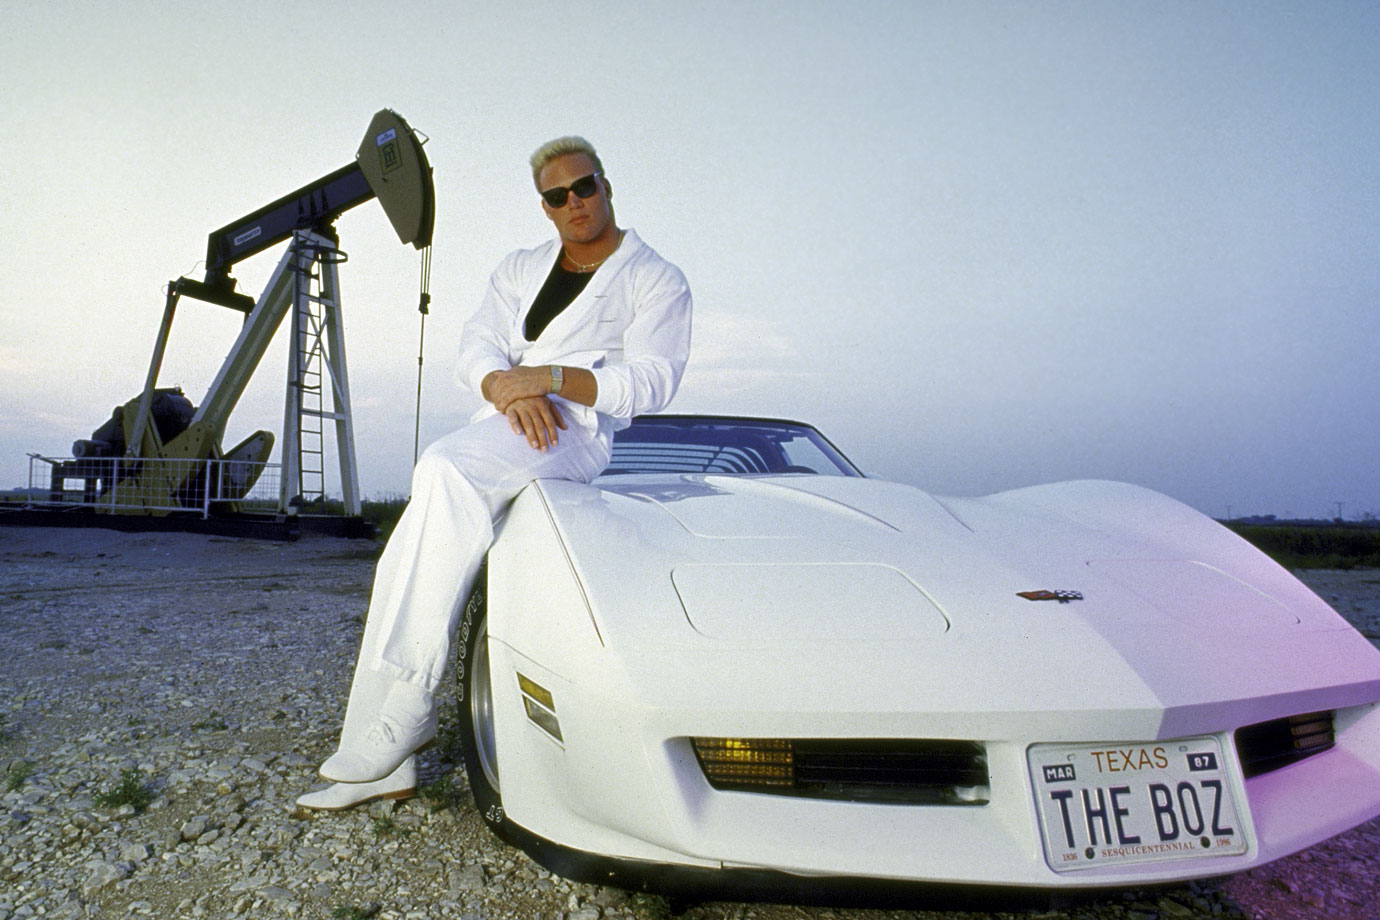 Brian Bosworth leans against his white Corvette.